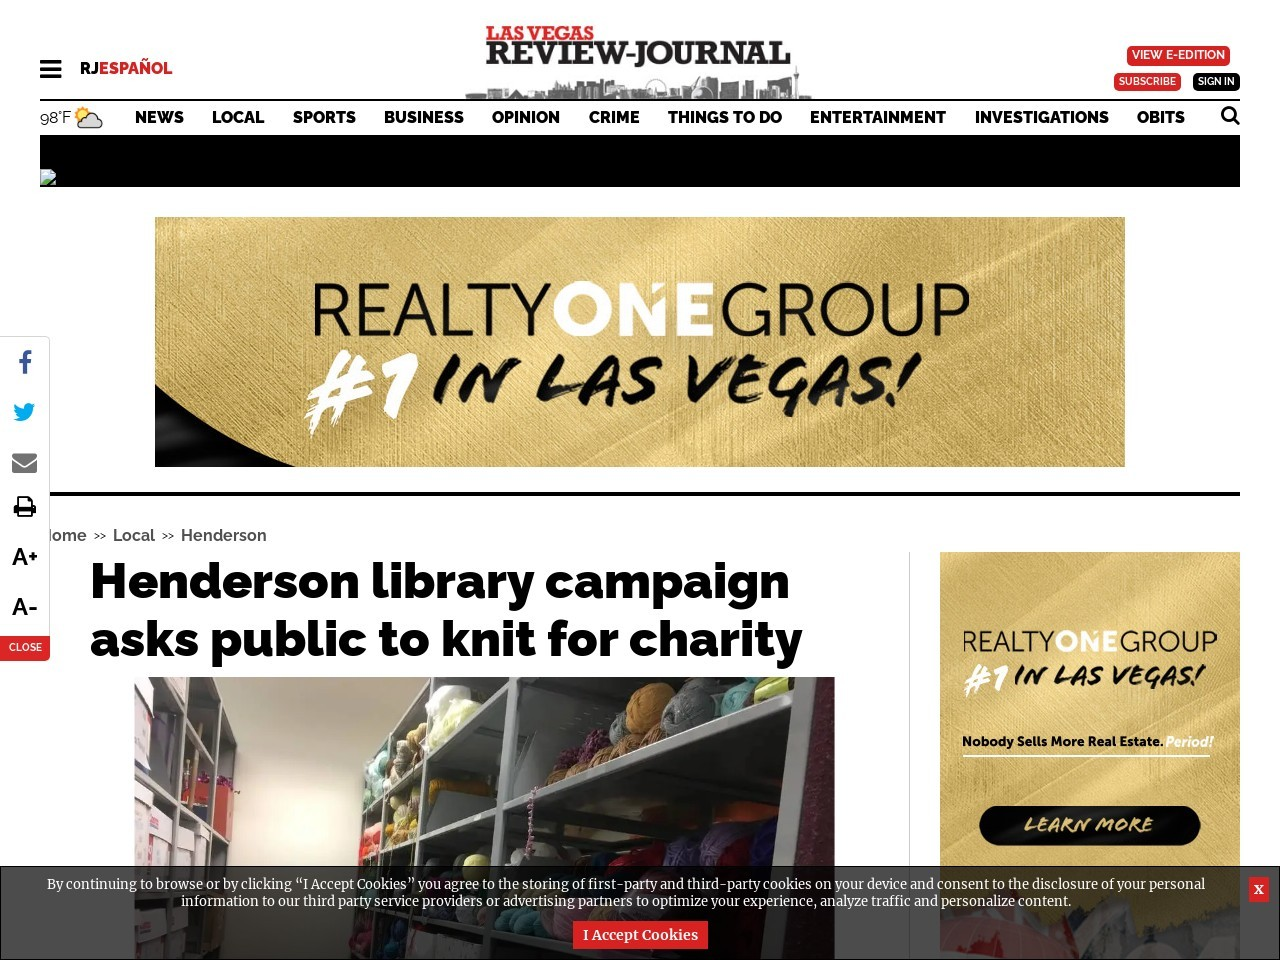 Henderson library campaign asks public to knit for charity